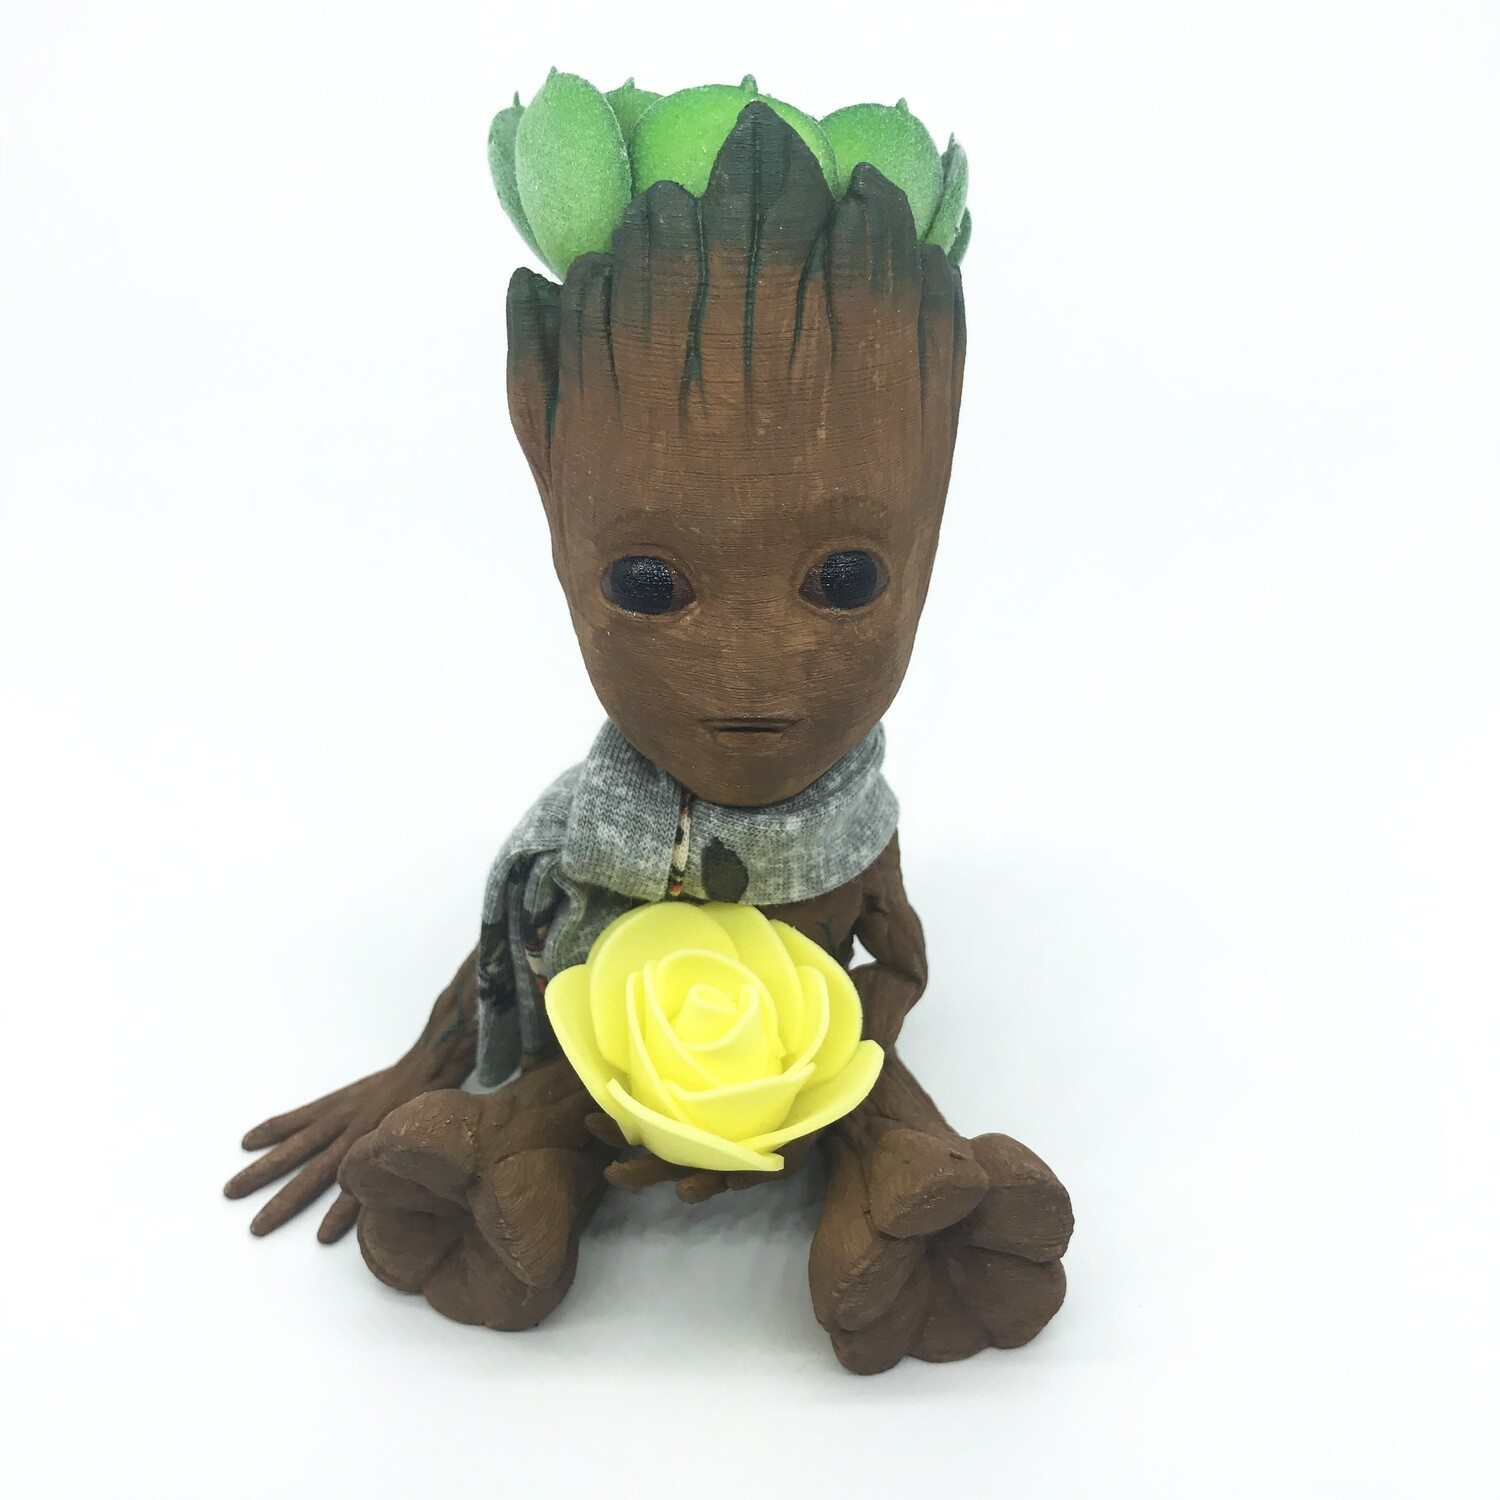 Cute & Happy Tree planter holding yellow flower with scarf & fake succulent